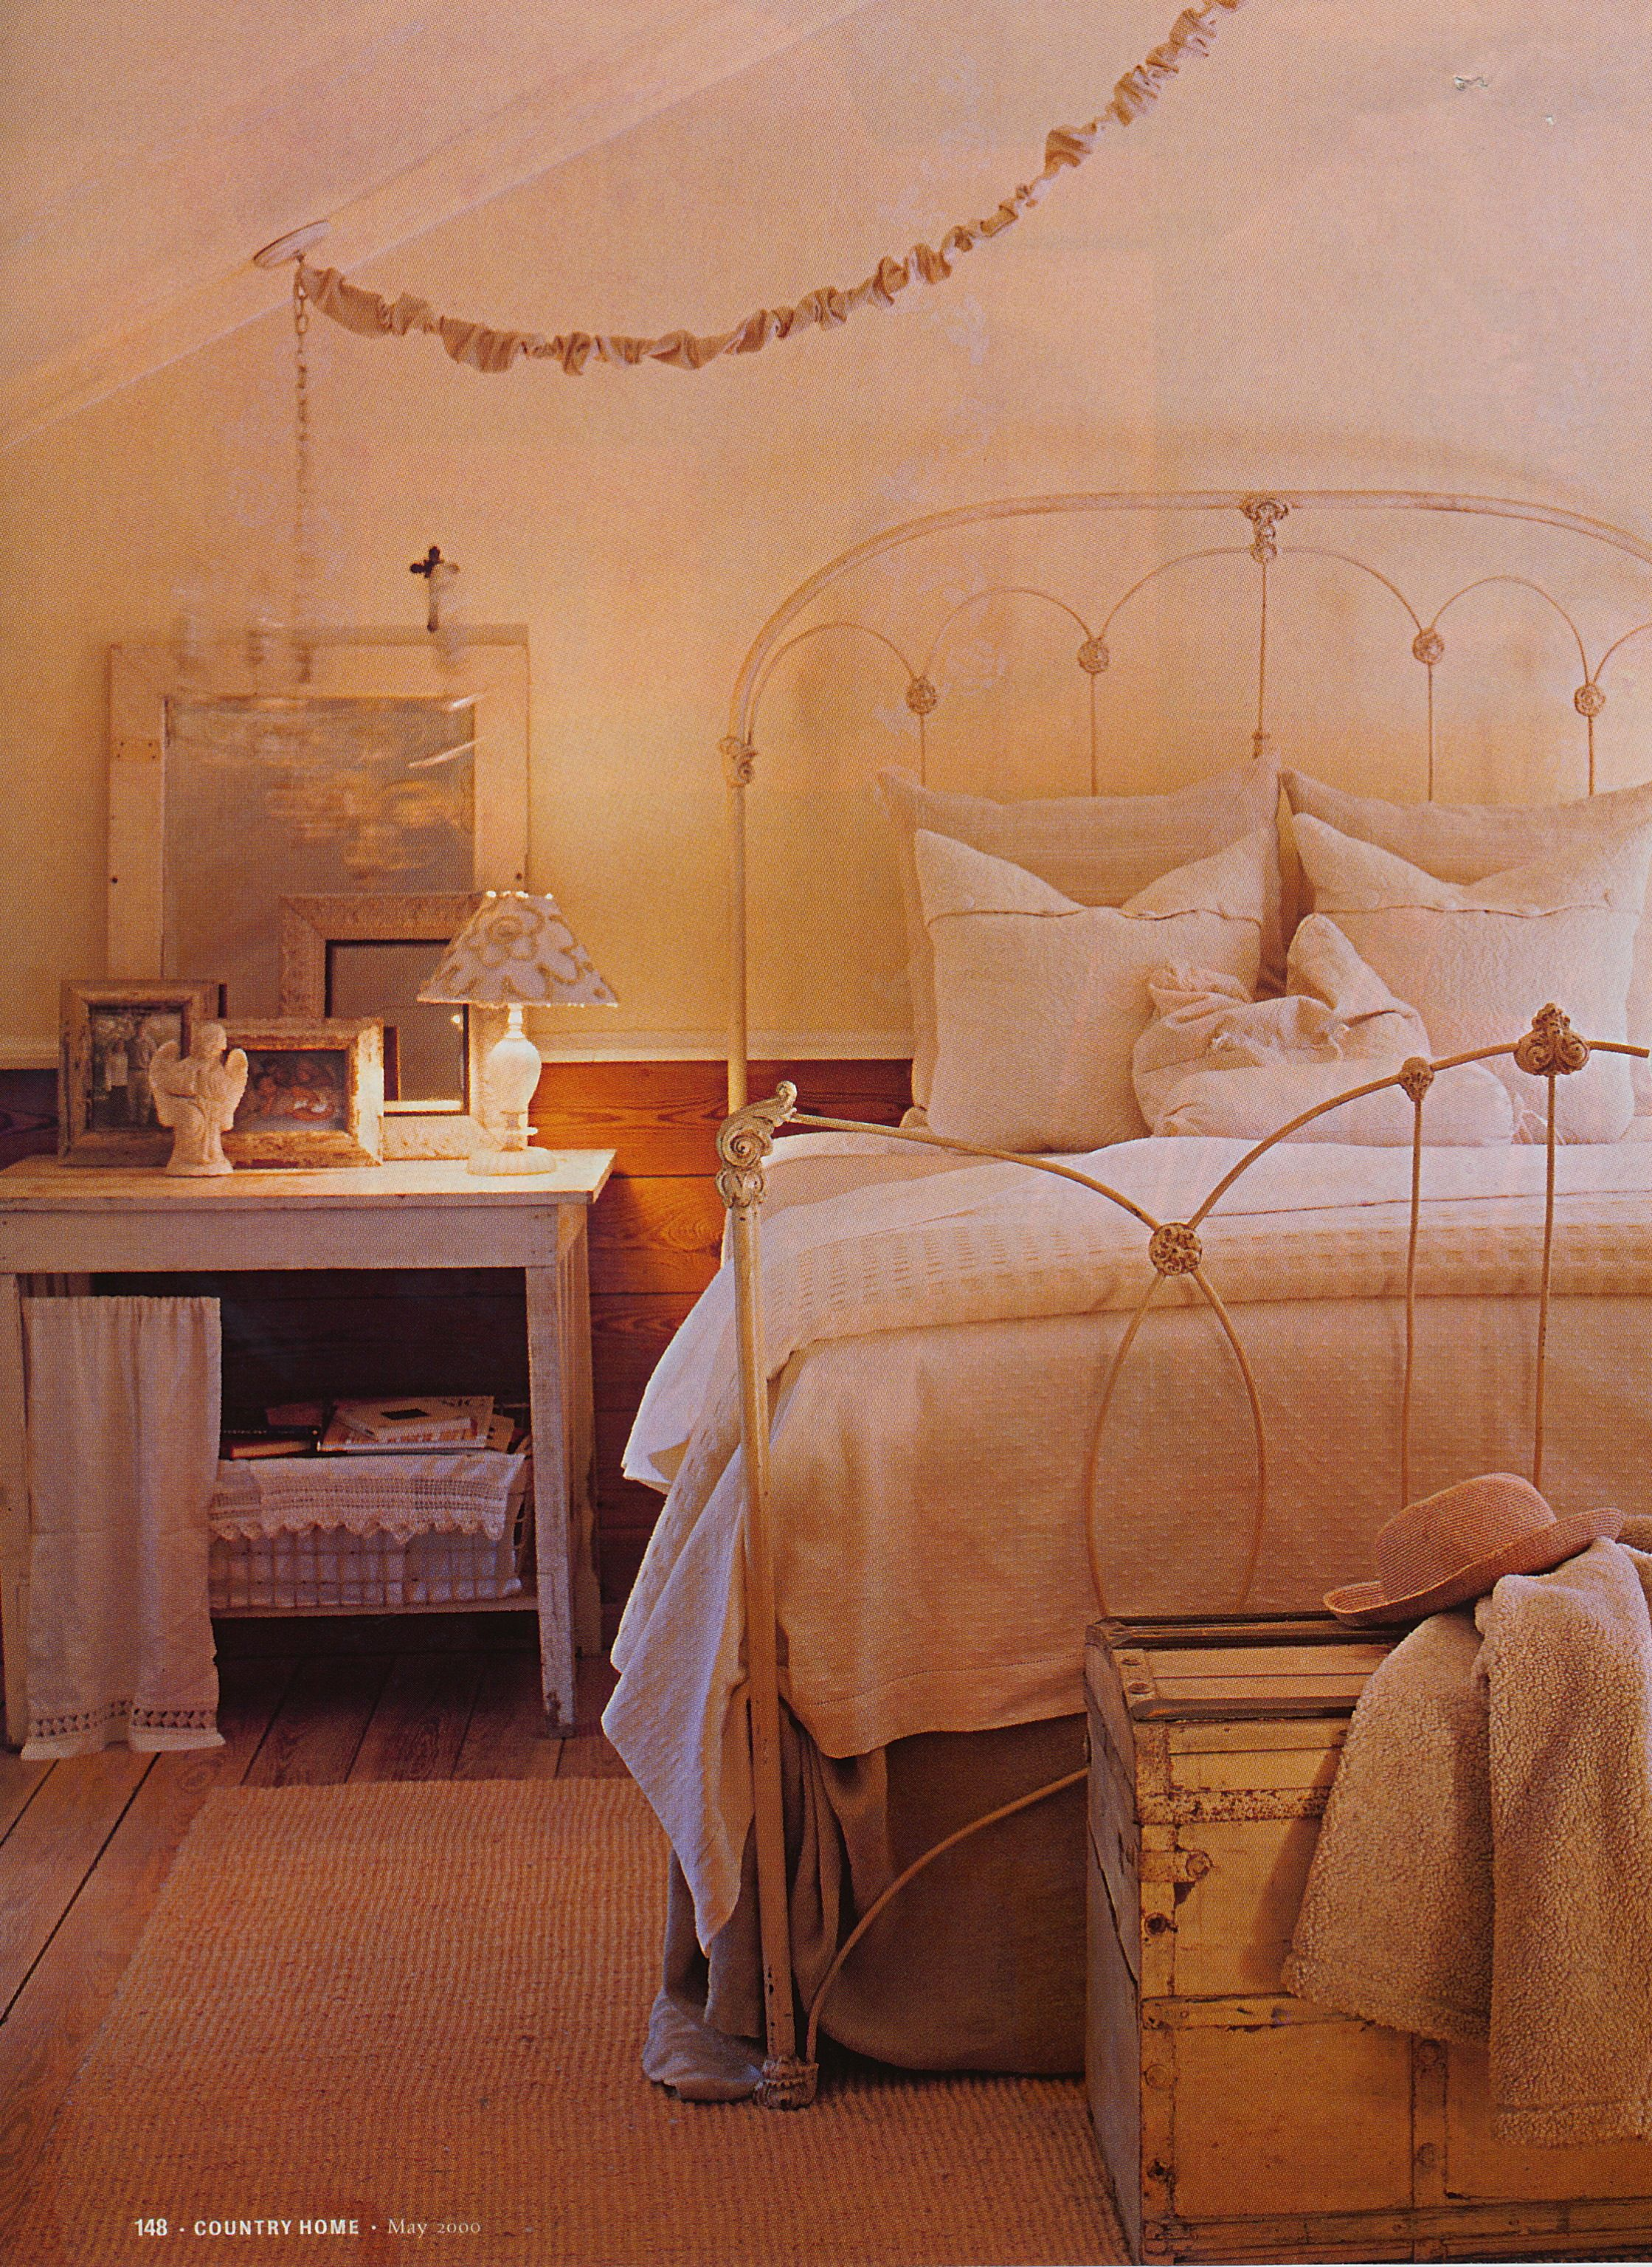 Country Home May 2000. Cozy bedroom in cream colors with